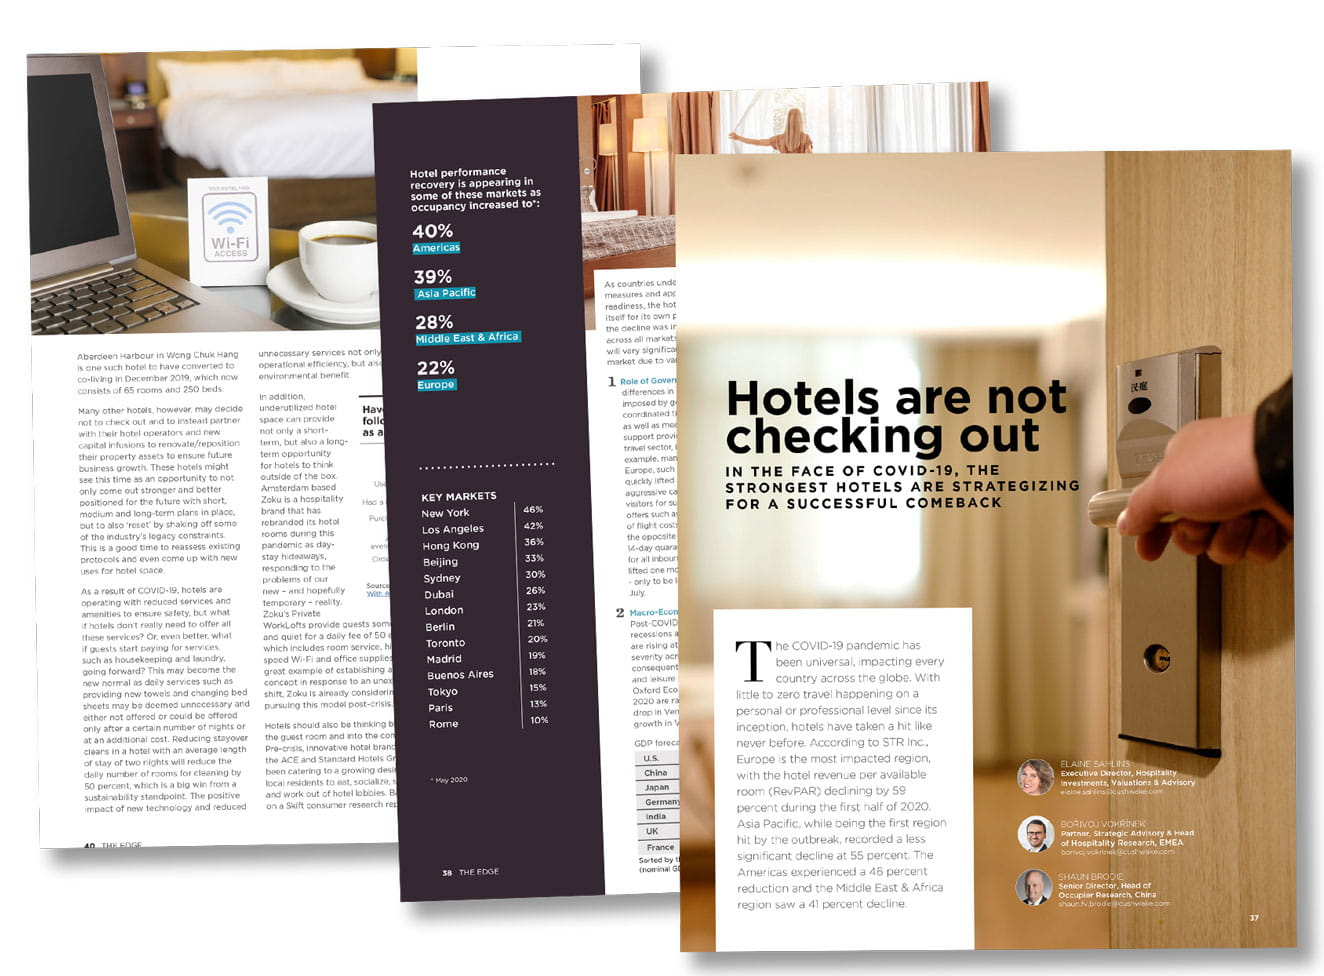 Hotels Edge 4 Article Cover (image)